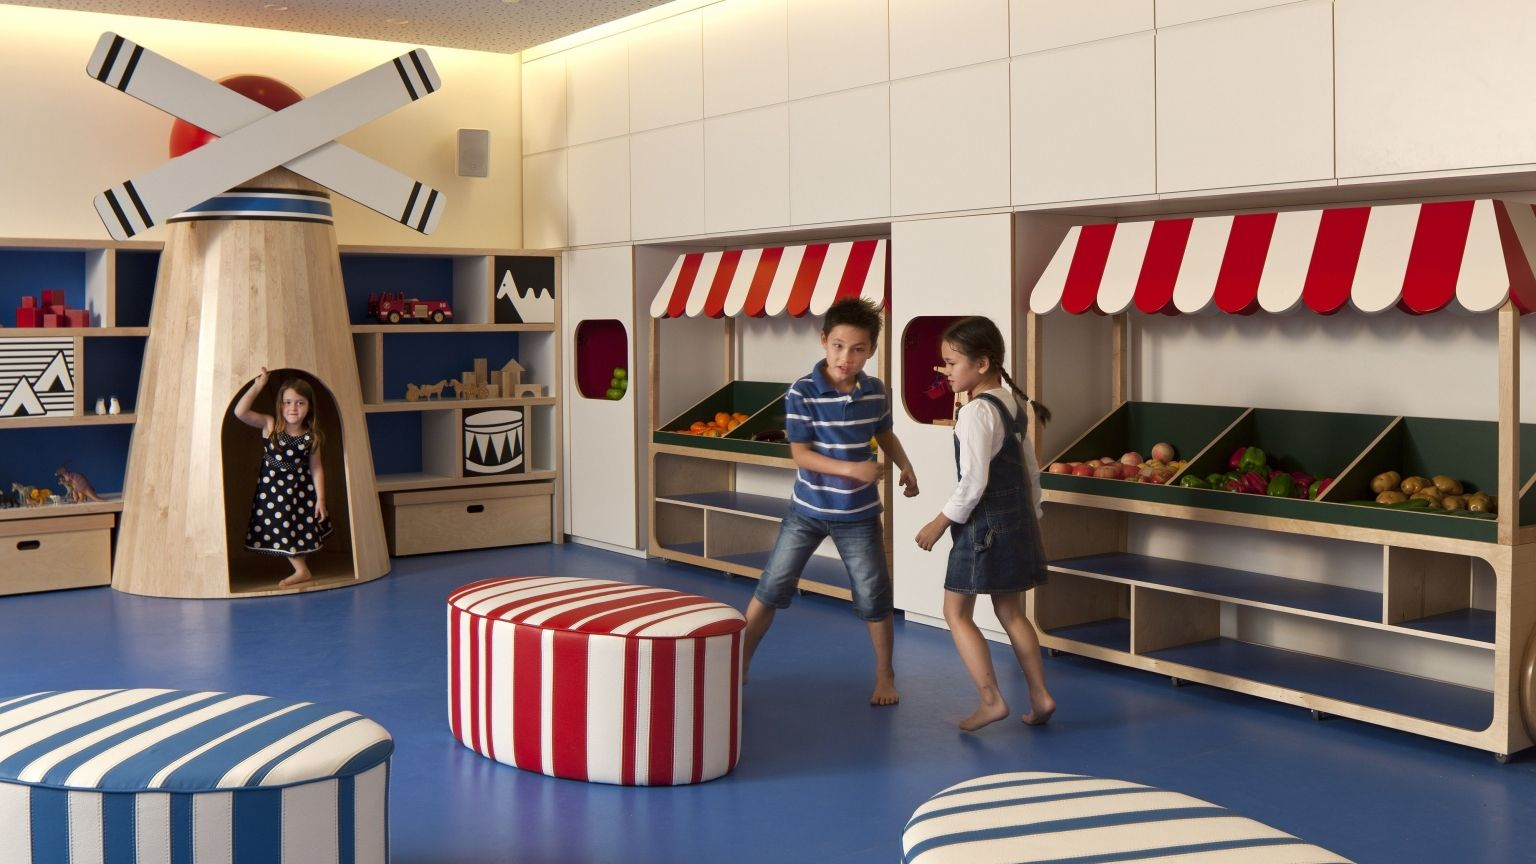 Children's Play Center | David Citadel Hotel Jerusalem